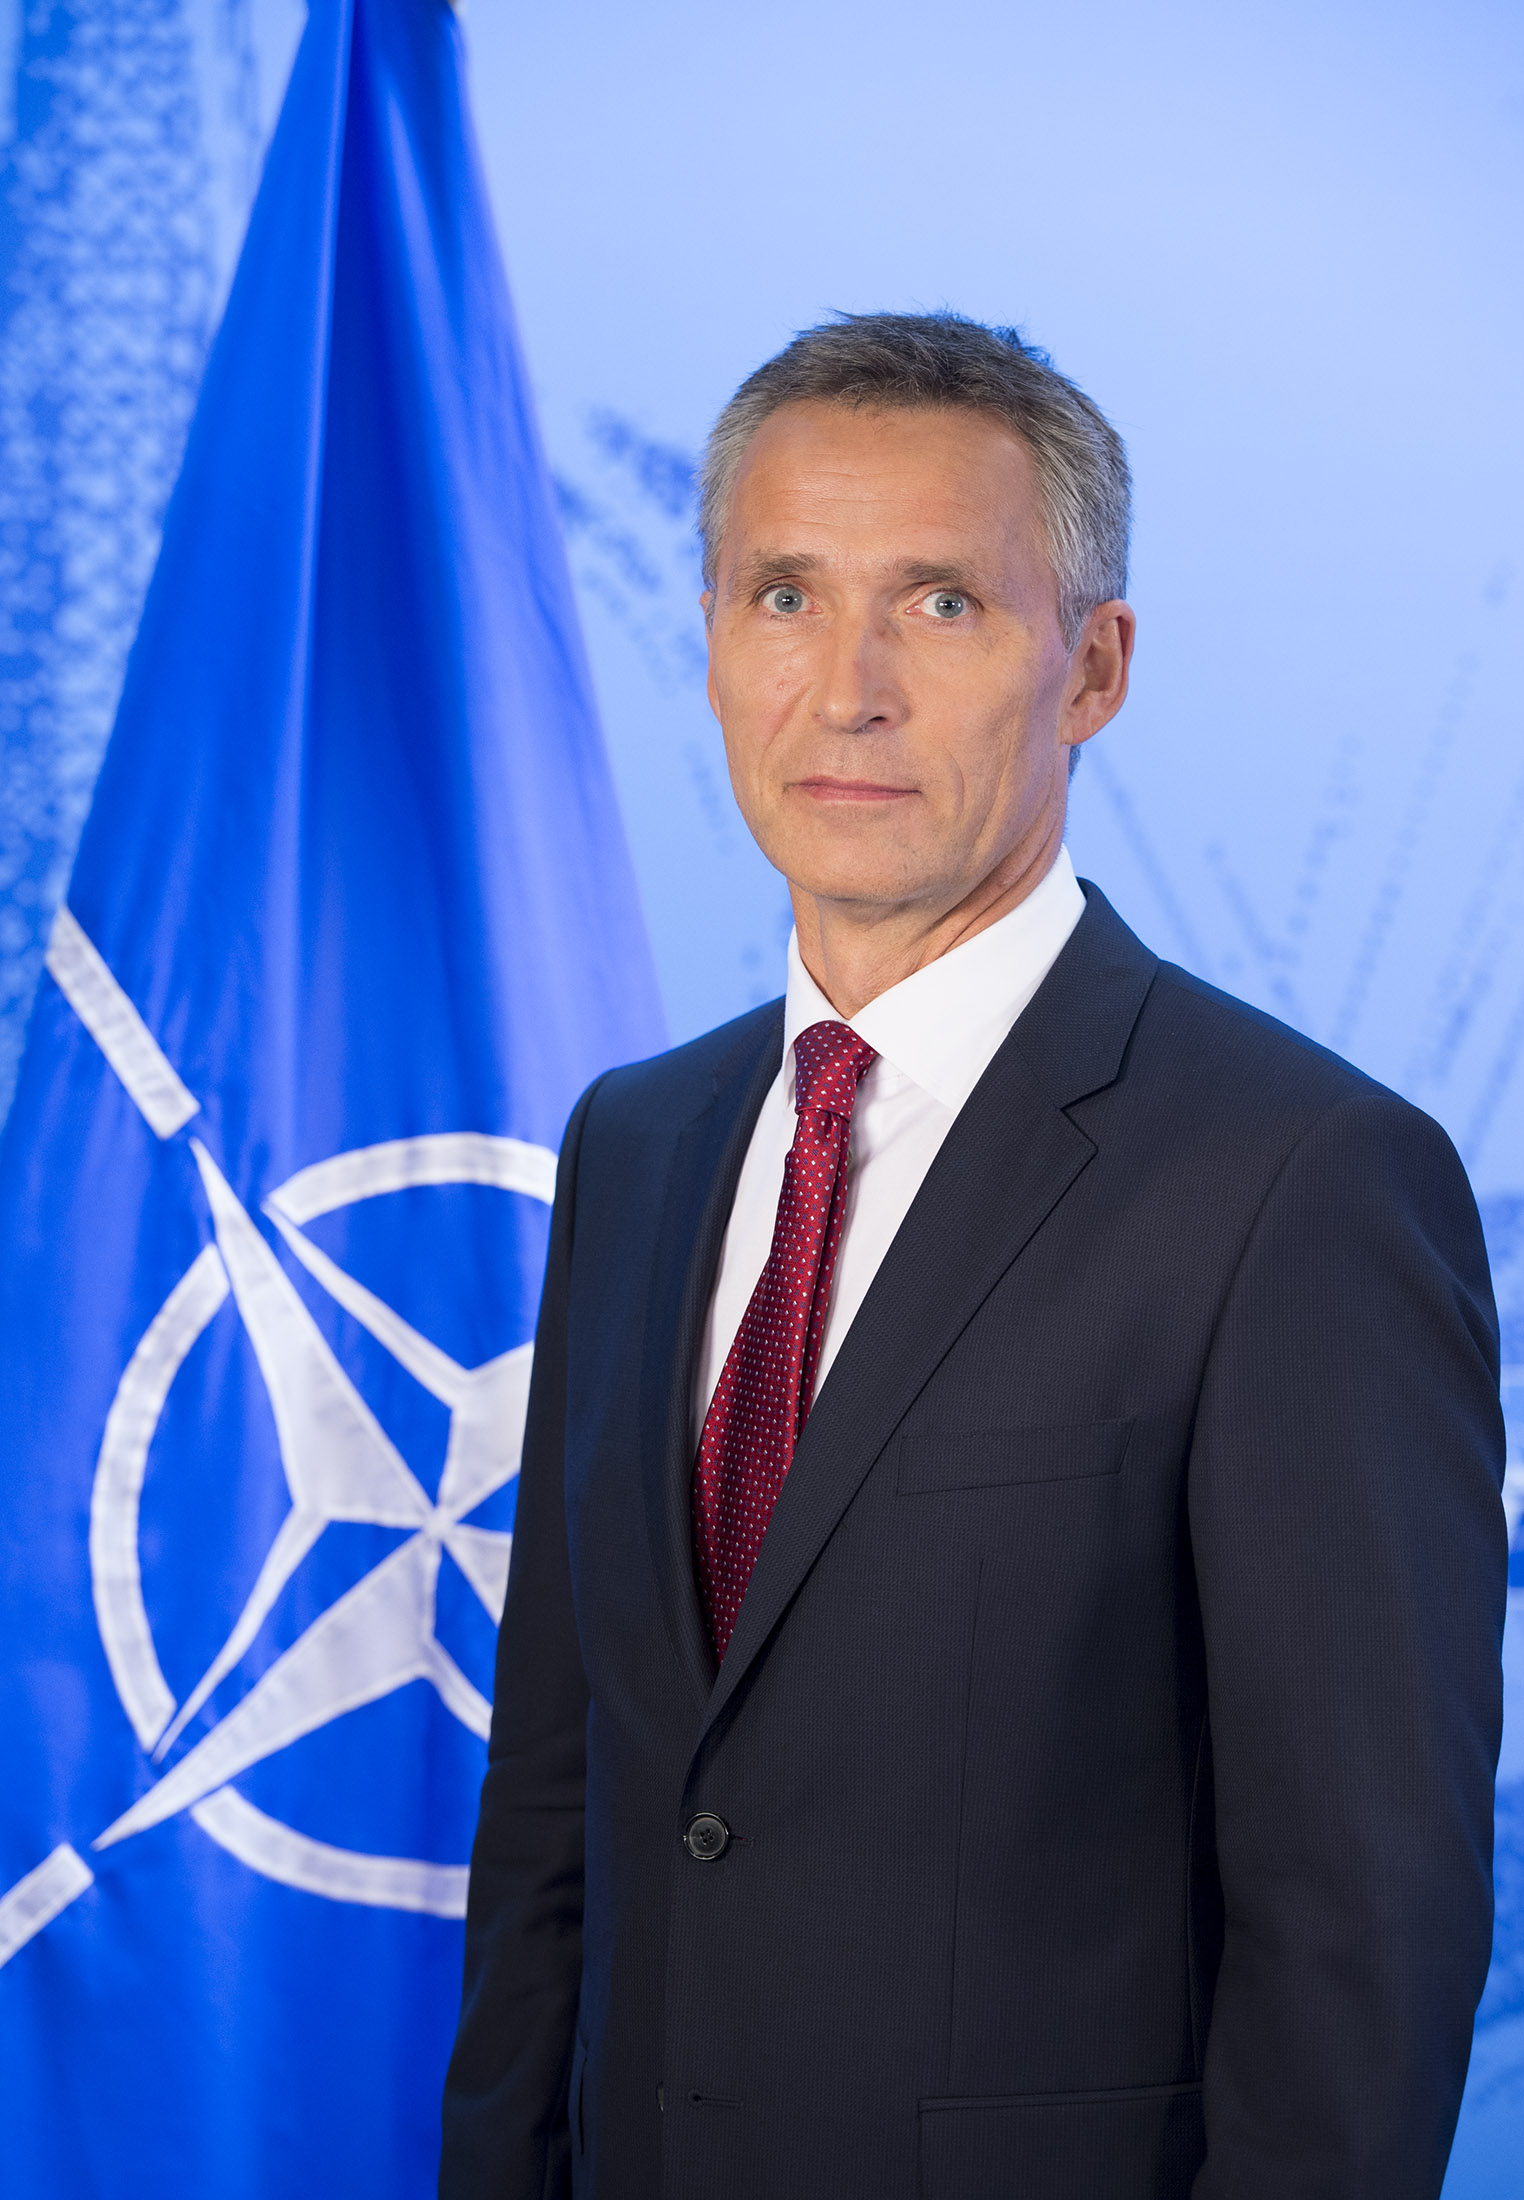 NATO Sec'ty General's statement on the outcome of the British referendum on the EU